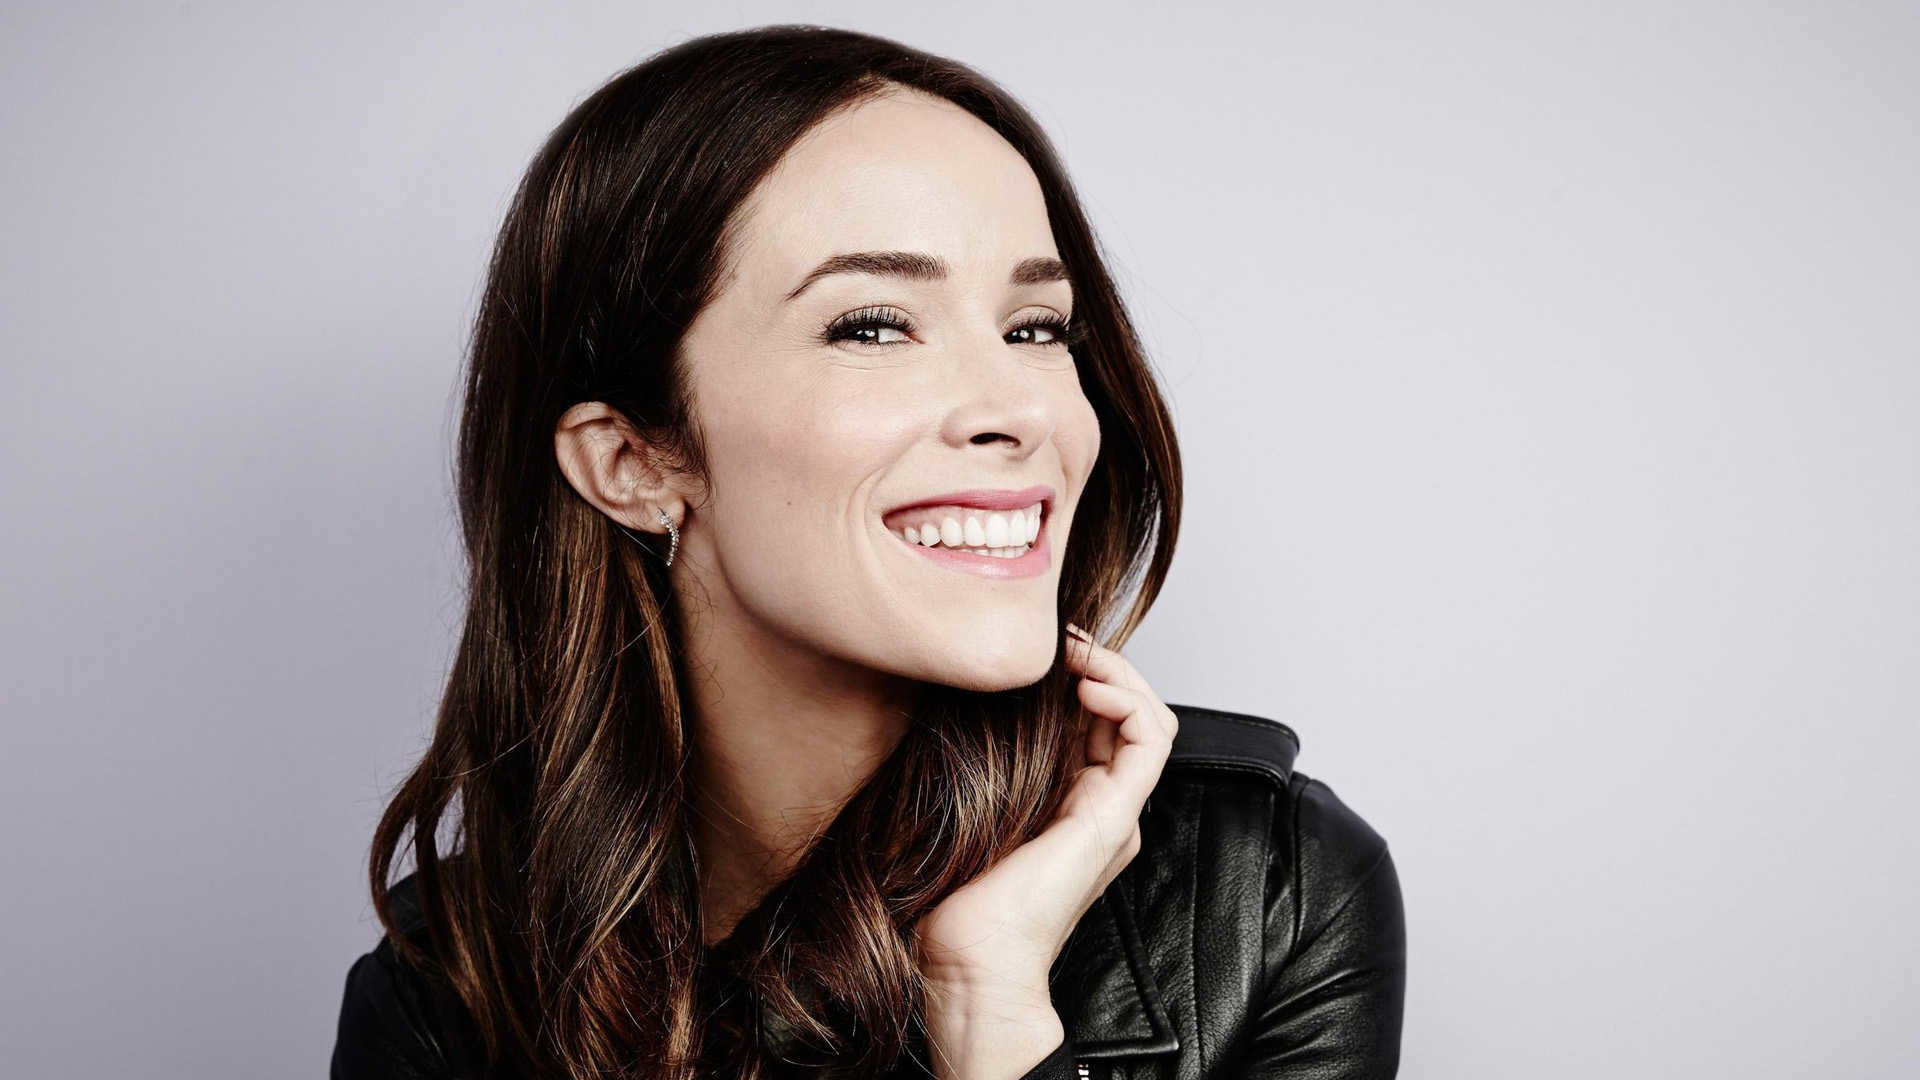 1920x1080 - Abigail Spencer Wallpapers 5